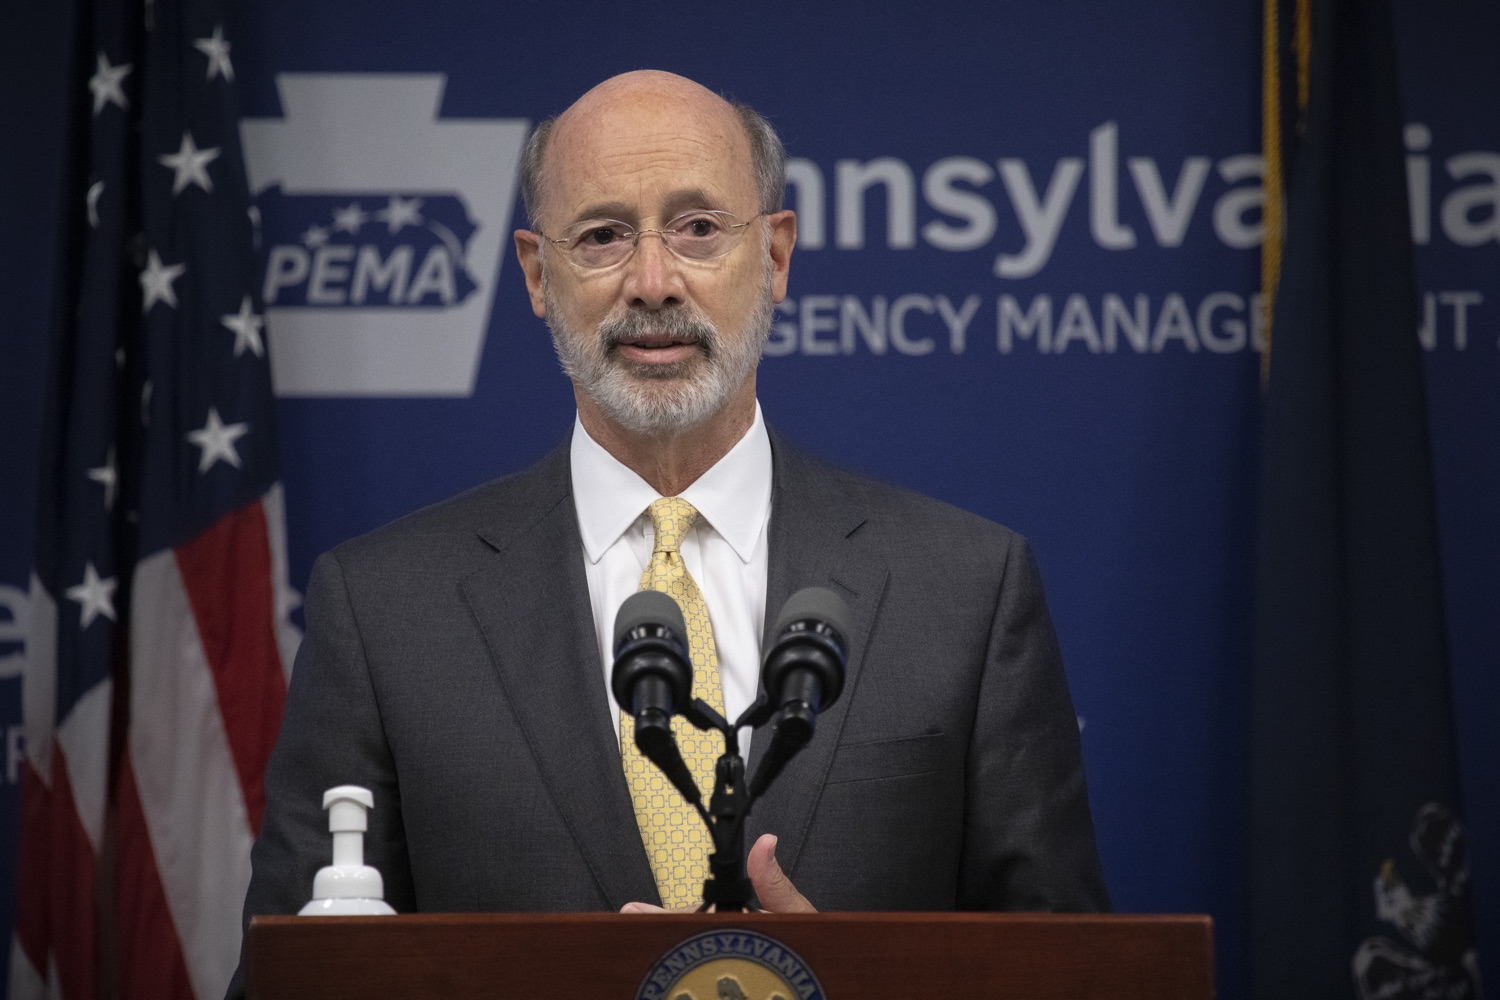 """<a href=""""https://filesource.wostreaming.net/commonwealthofpa/photo/18201_gov_orasure_dz_010.jpg"""" target=""""_blank"""">⇣Download Photo<br></a>Pennsylvania Governor Tom Wolf speaking to the press.  Today, Governor Tom Wolf announced that OraSure Technologies Inc., a developer and manufacturer of rapid diagnostic tests, collection and stabilization devices headquartered in Northampton County, will expand its manufacturing operations in the Lehigh Valley, creating 177 new, full-time jobs and retaining 233 jobs.  Harrisburg, PA  August 11, 2020"""